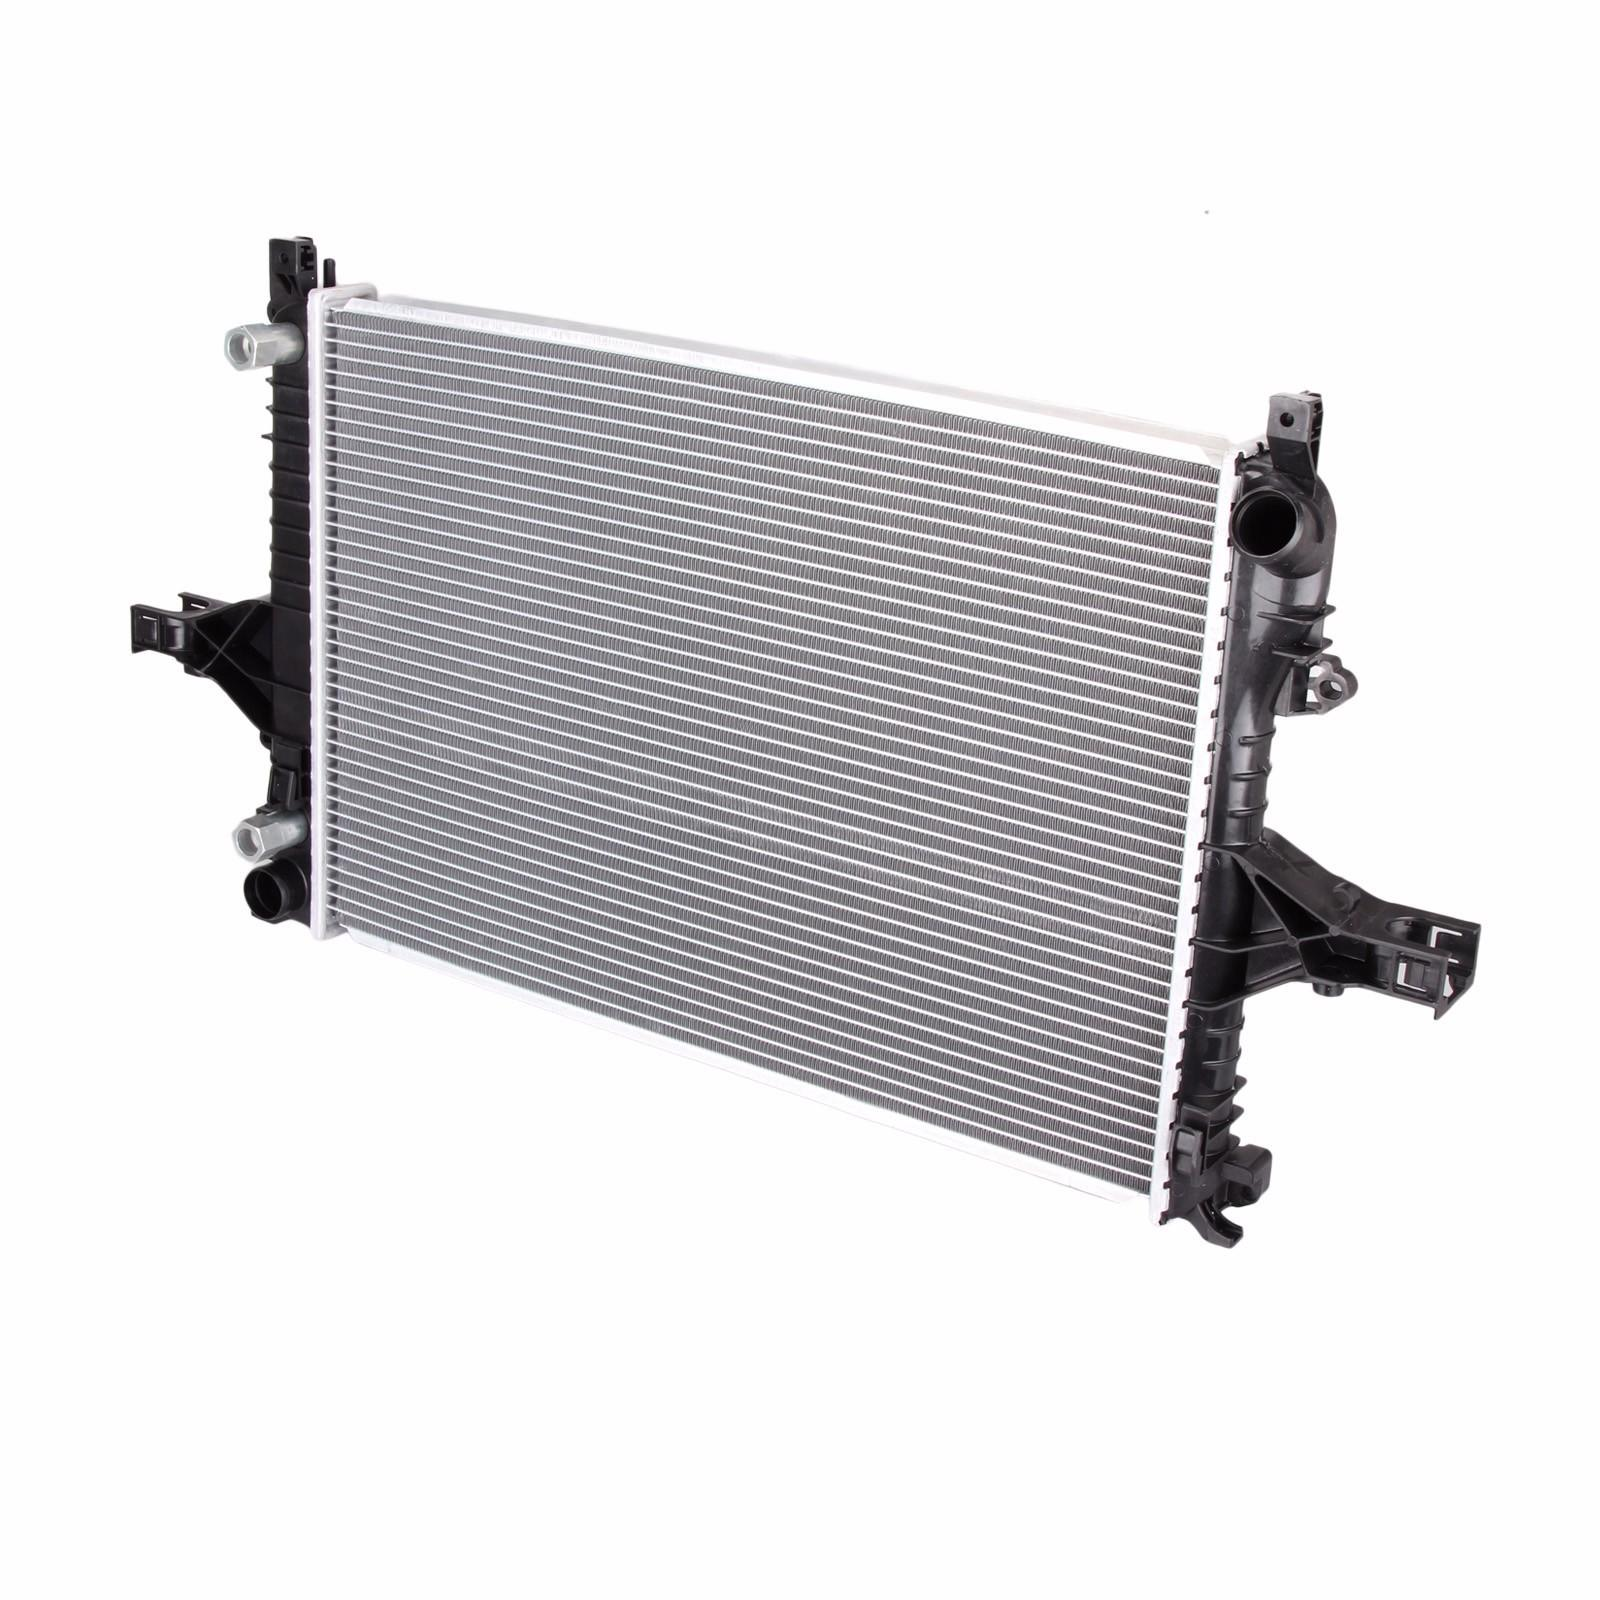 Dromedary-Find Volvo V70 Radiator Replacement Cost Volvo S60 Radiator From Hongdao-2